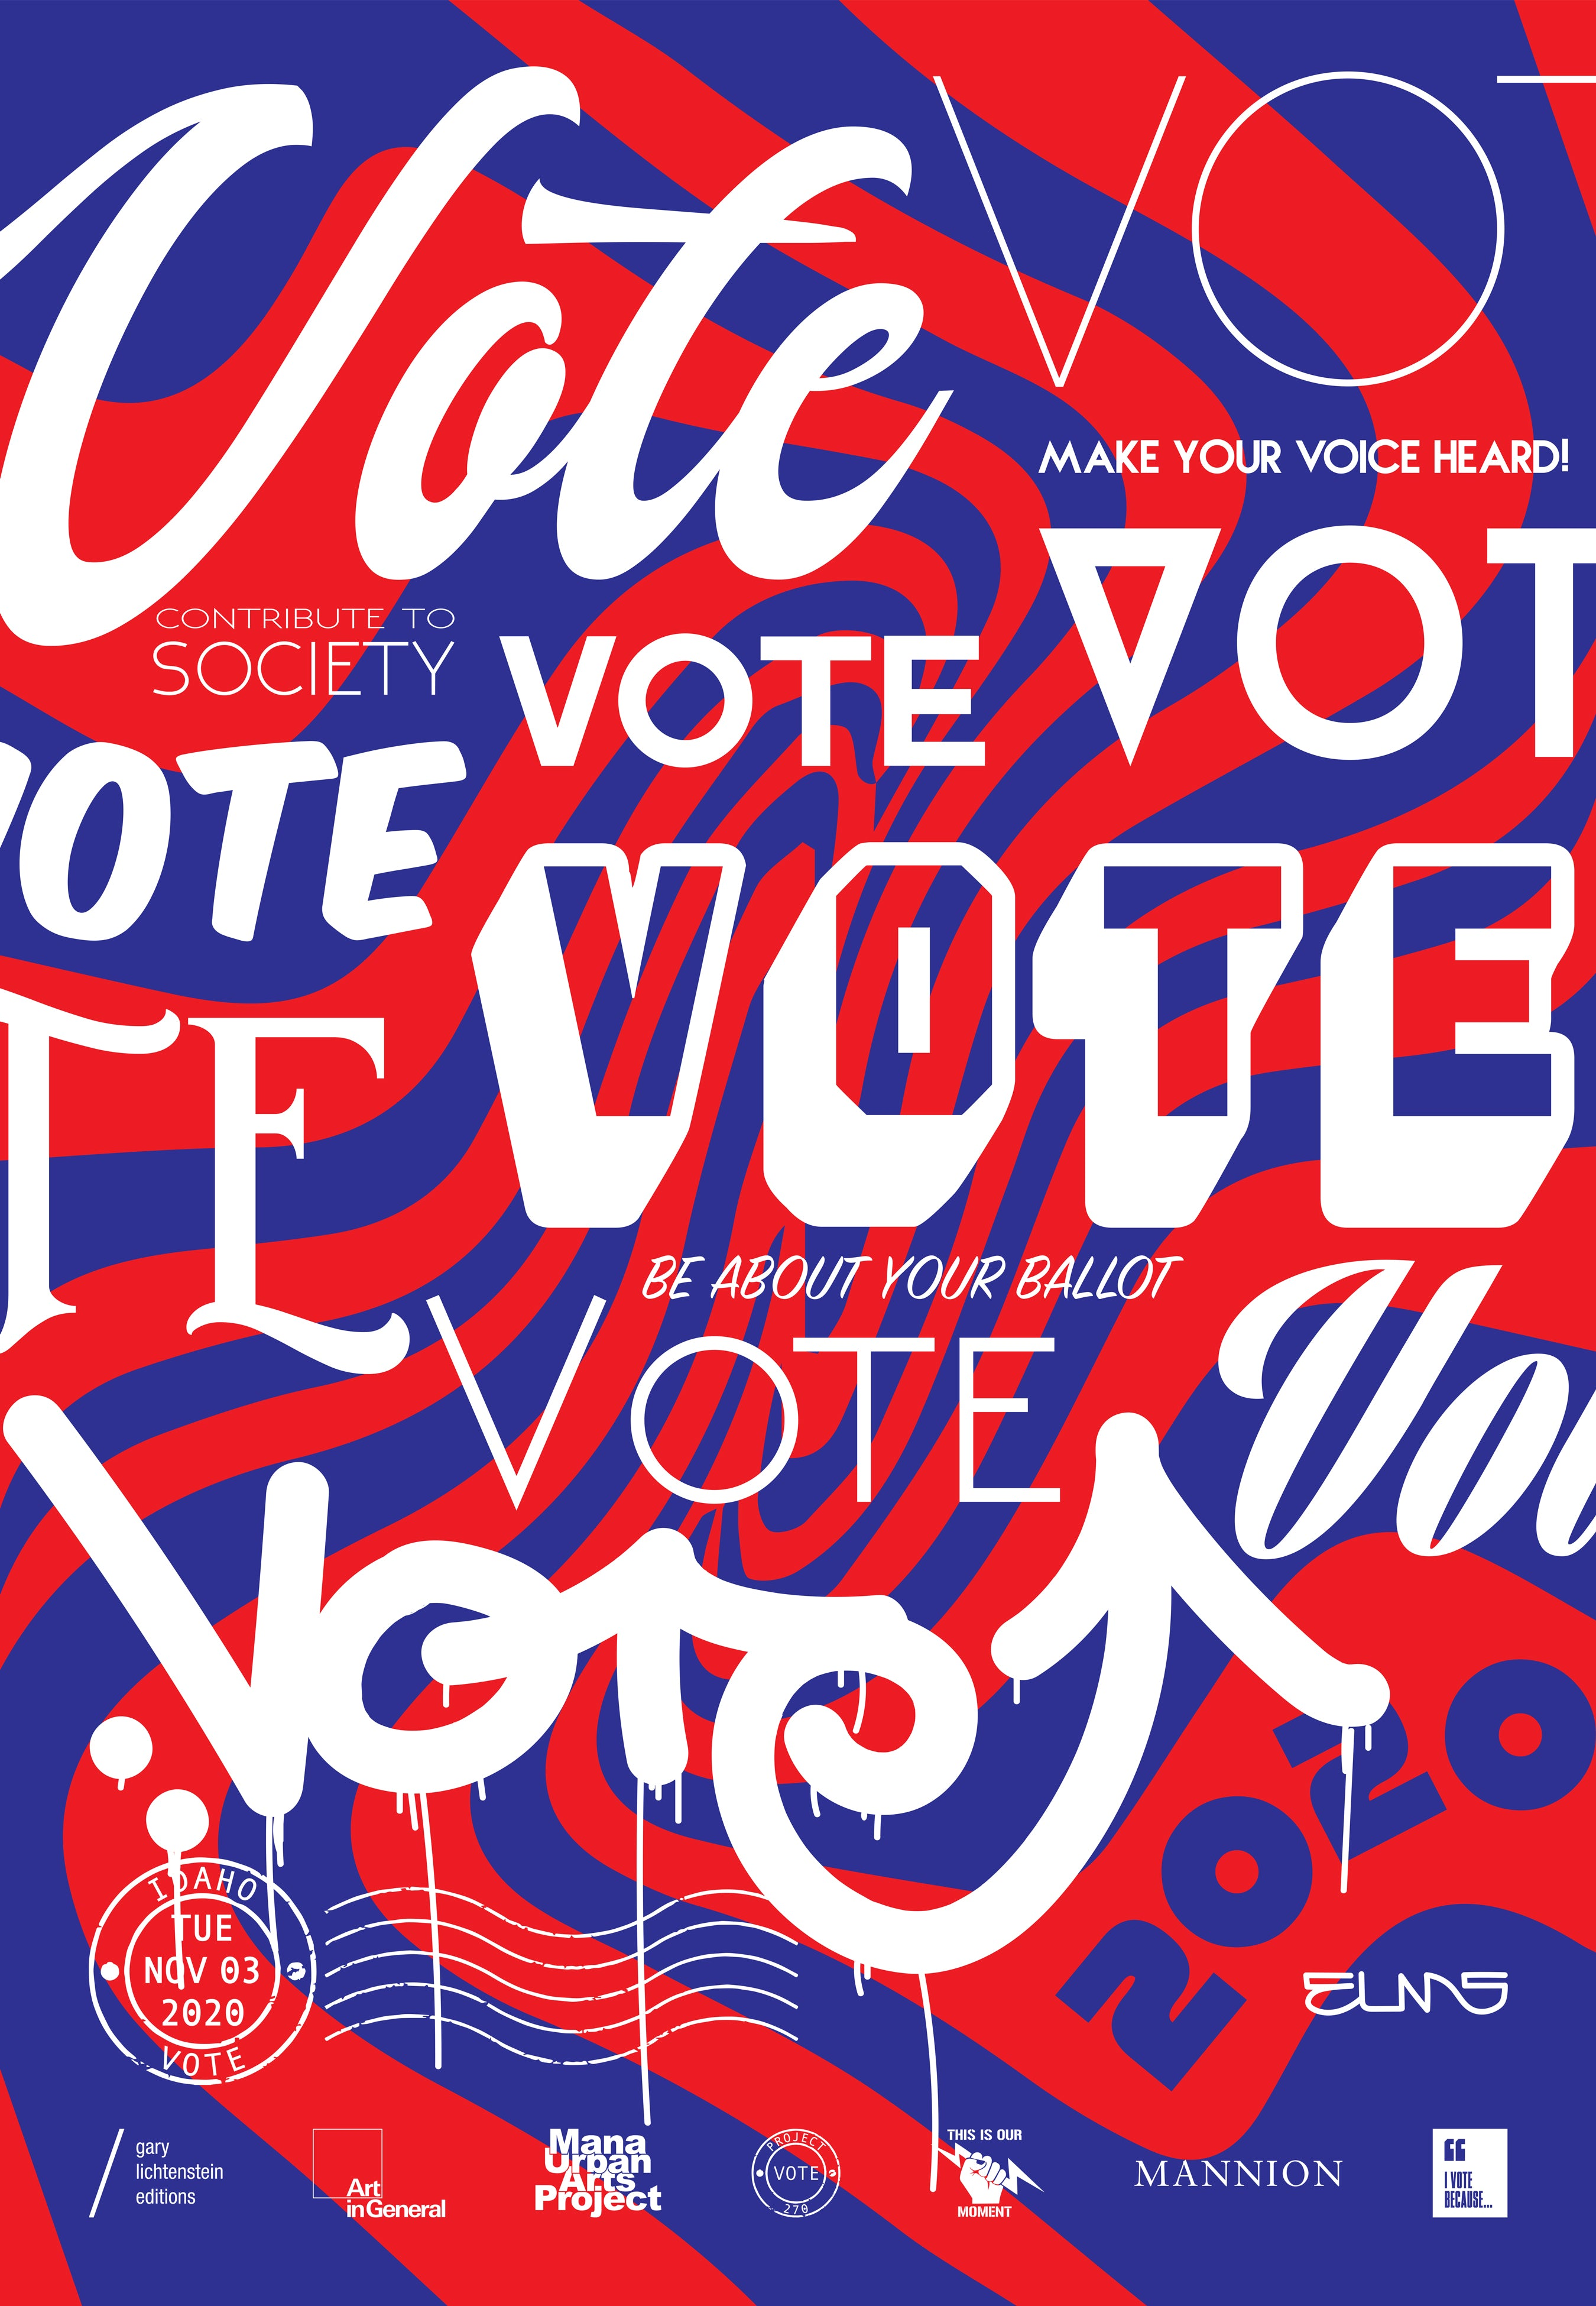 Idaho Get Out The Vote Poster by Elms One